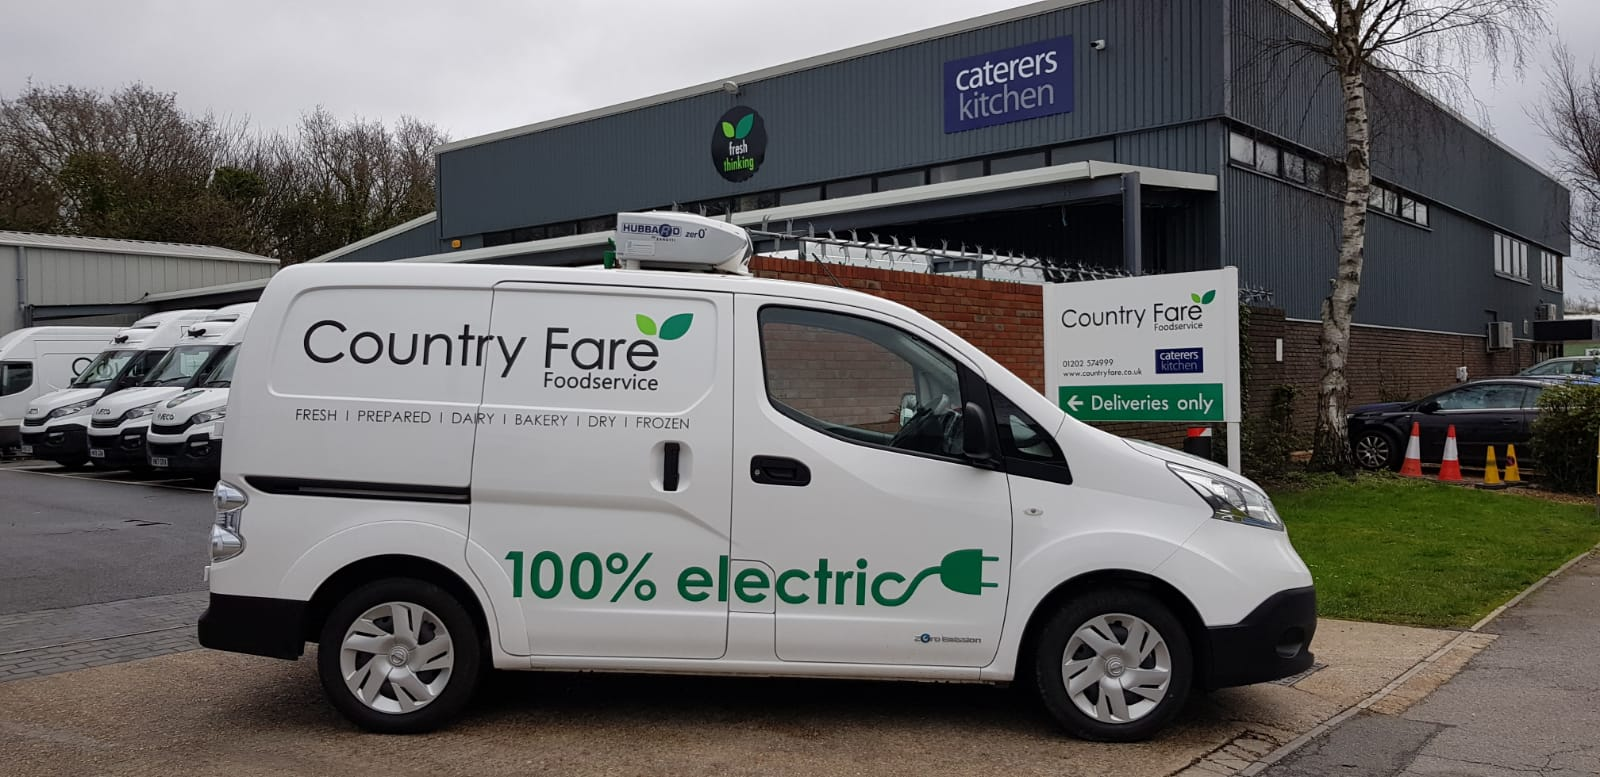 All-Electric Refrigerated Vehicle For Country Fare